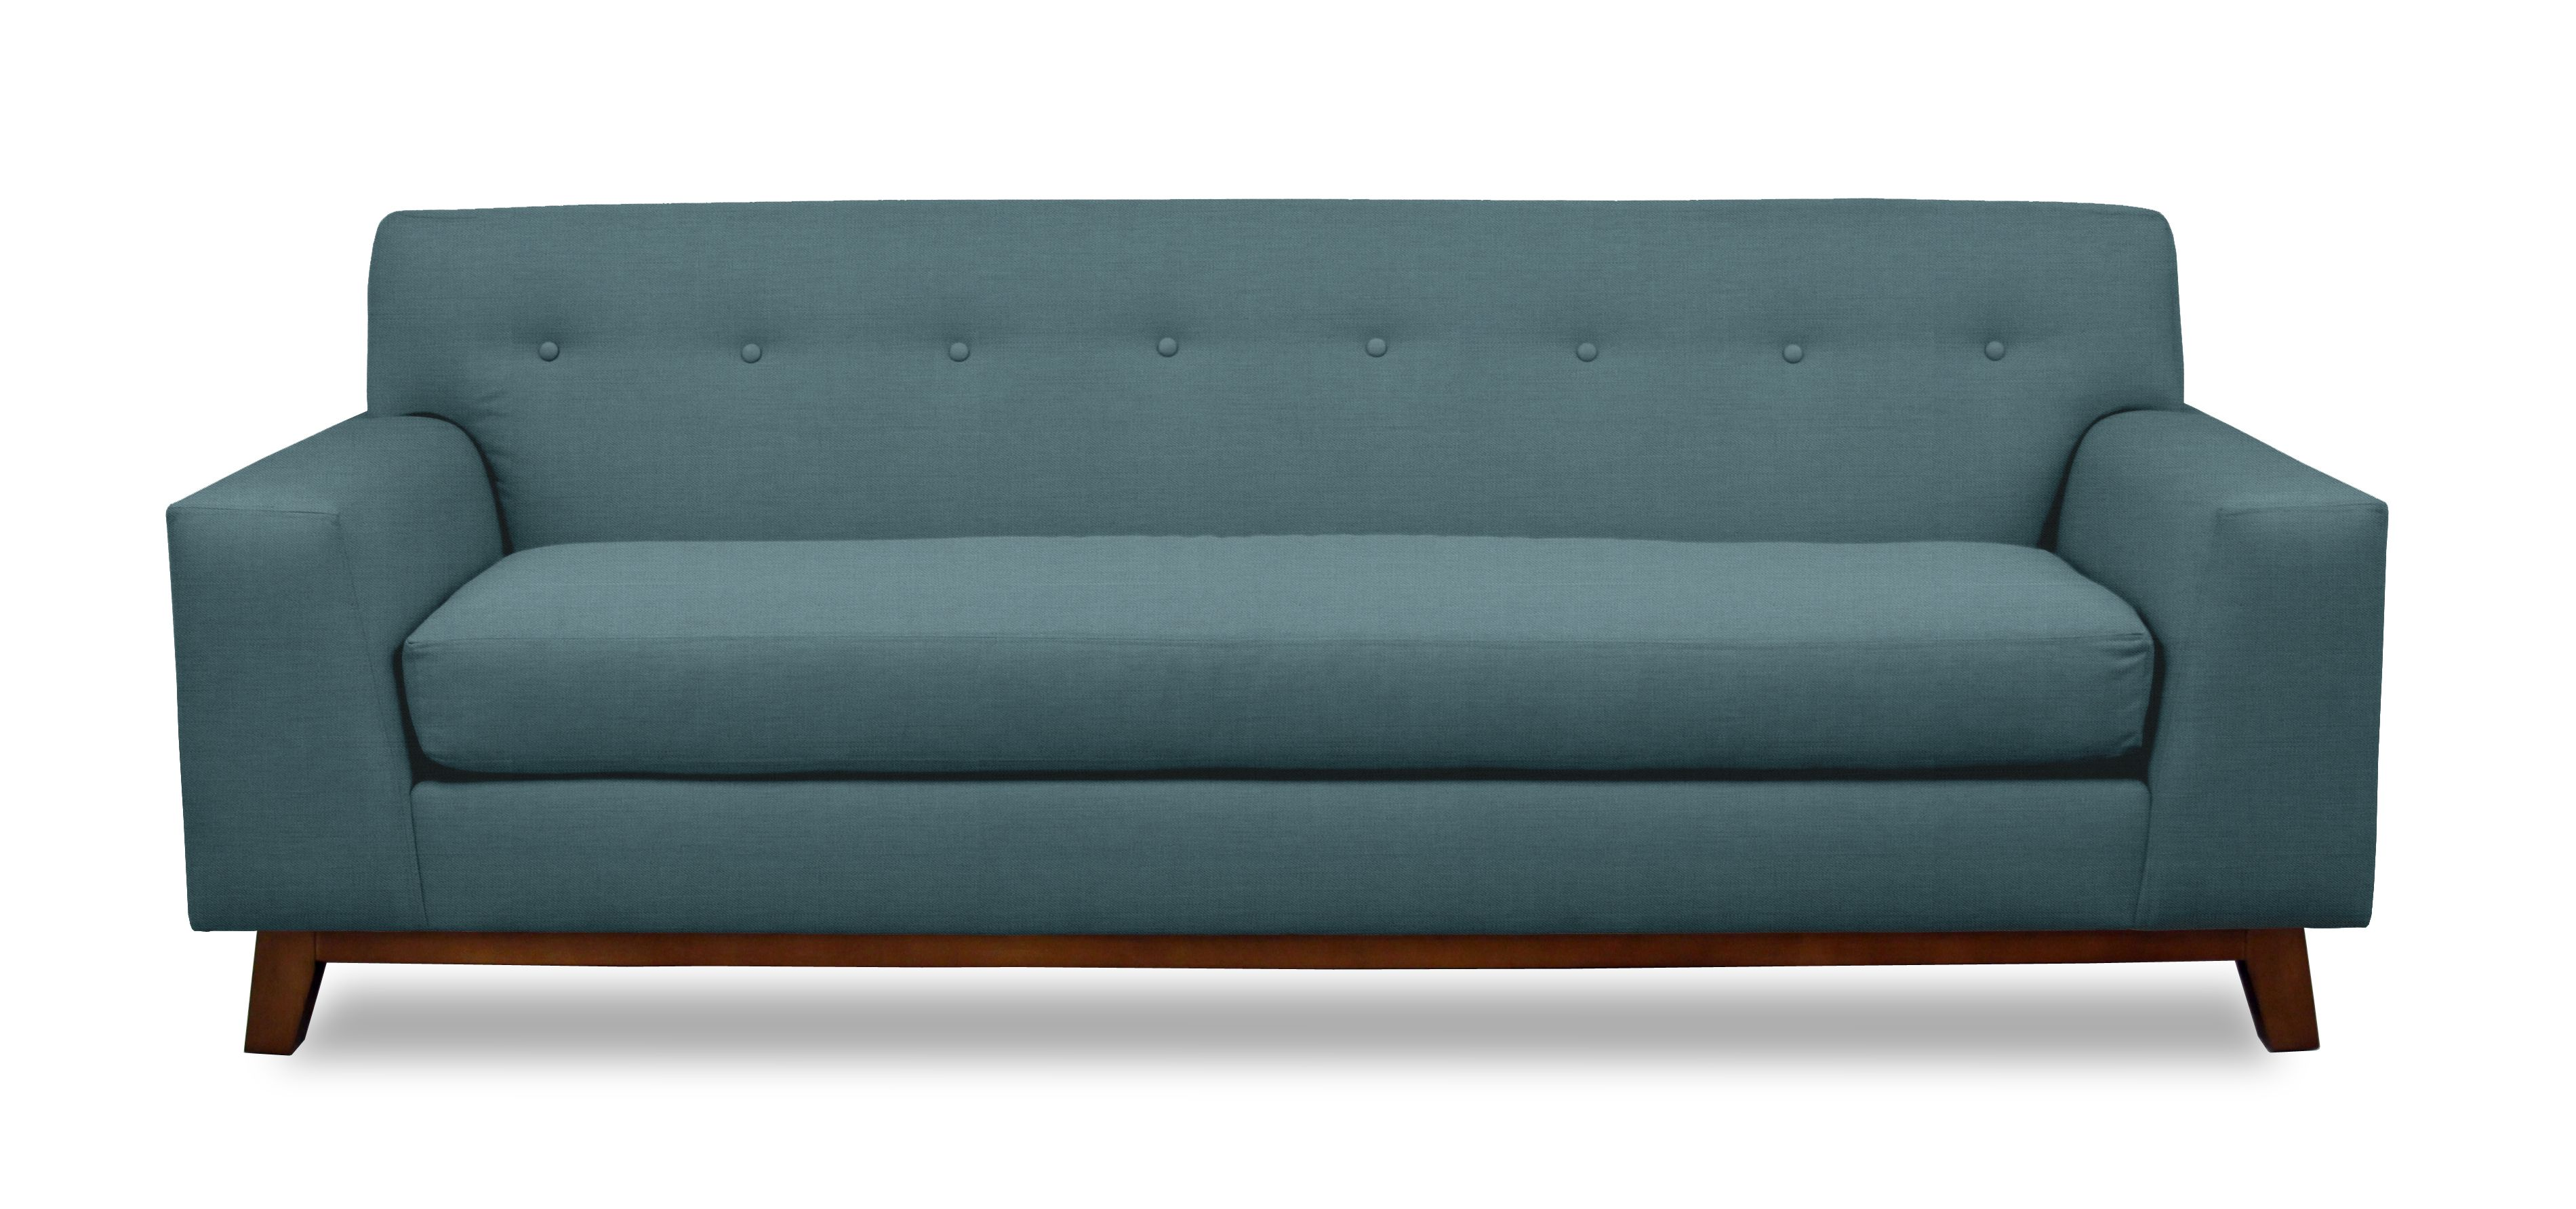 Find A Crypton Fabric Retailer Near You Shop Locally Or Online Crypton Fabric Sofa Sofa Sofa Decor